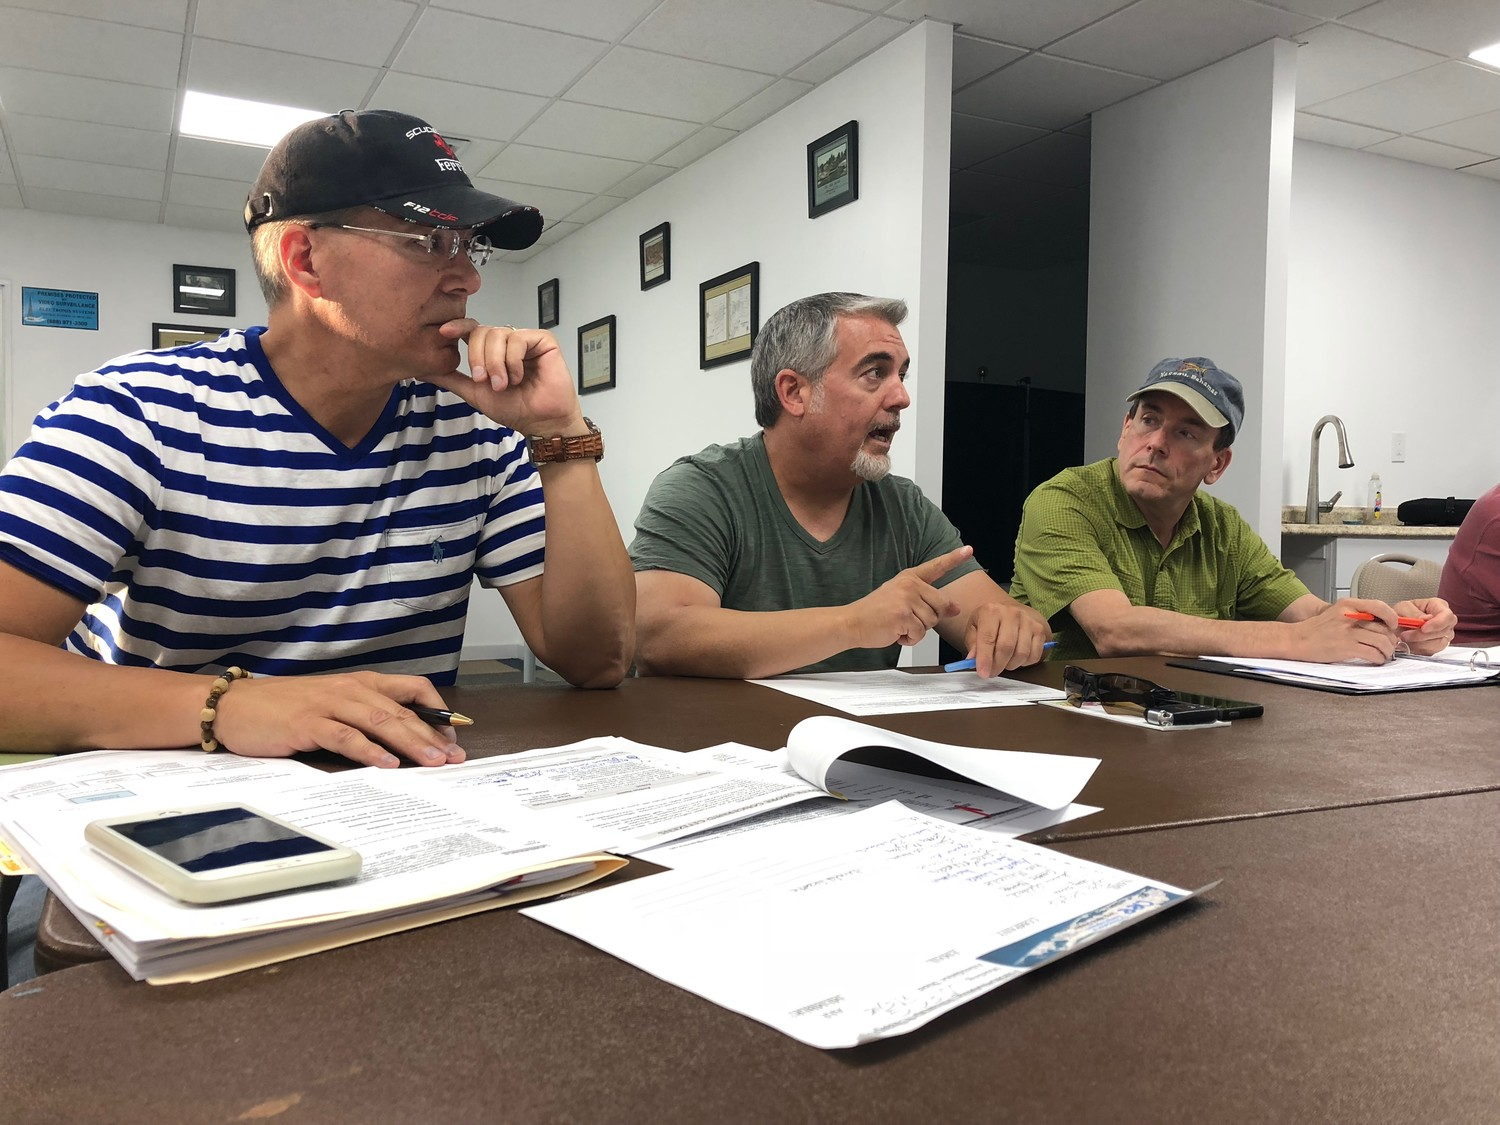 Glen Head residents and NYAW ratepayers Lawrence Ruisi, left, Dan O'Connor and Steve Warshaw were in attendance at the July 5 meeting.